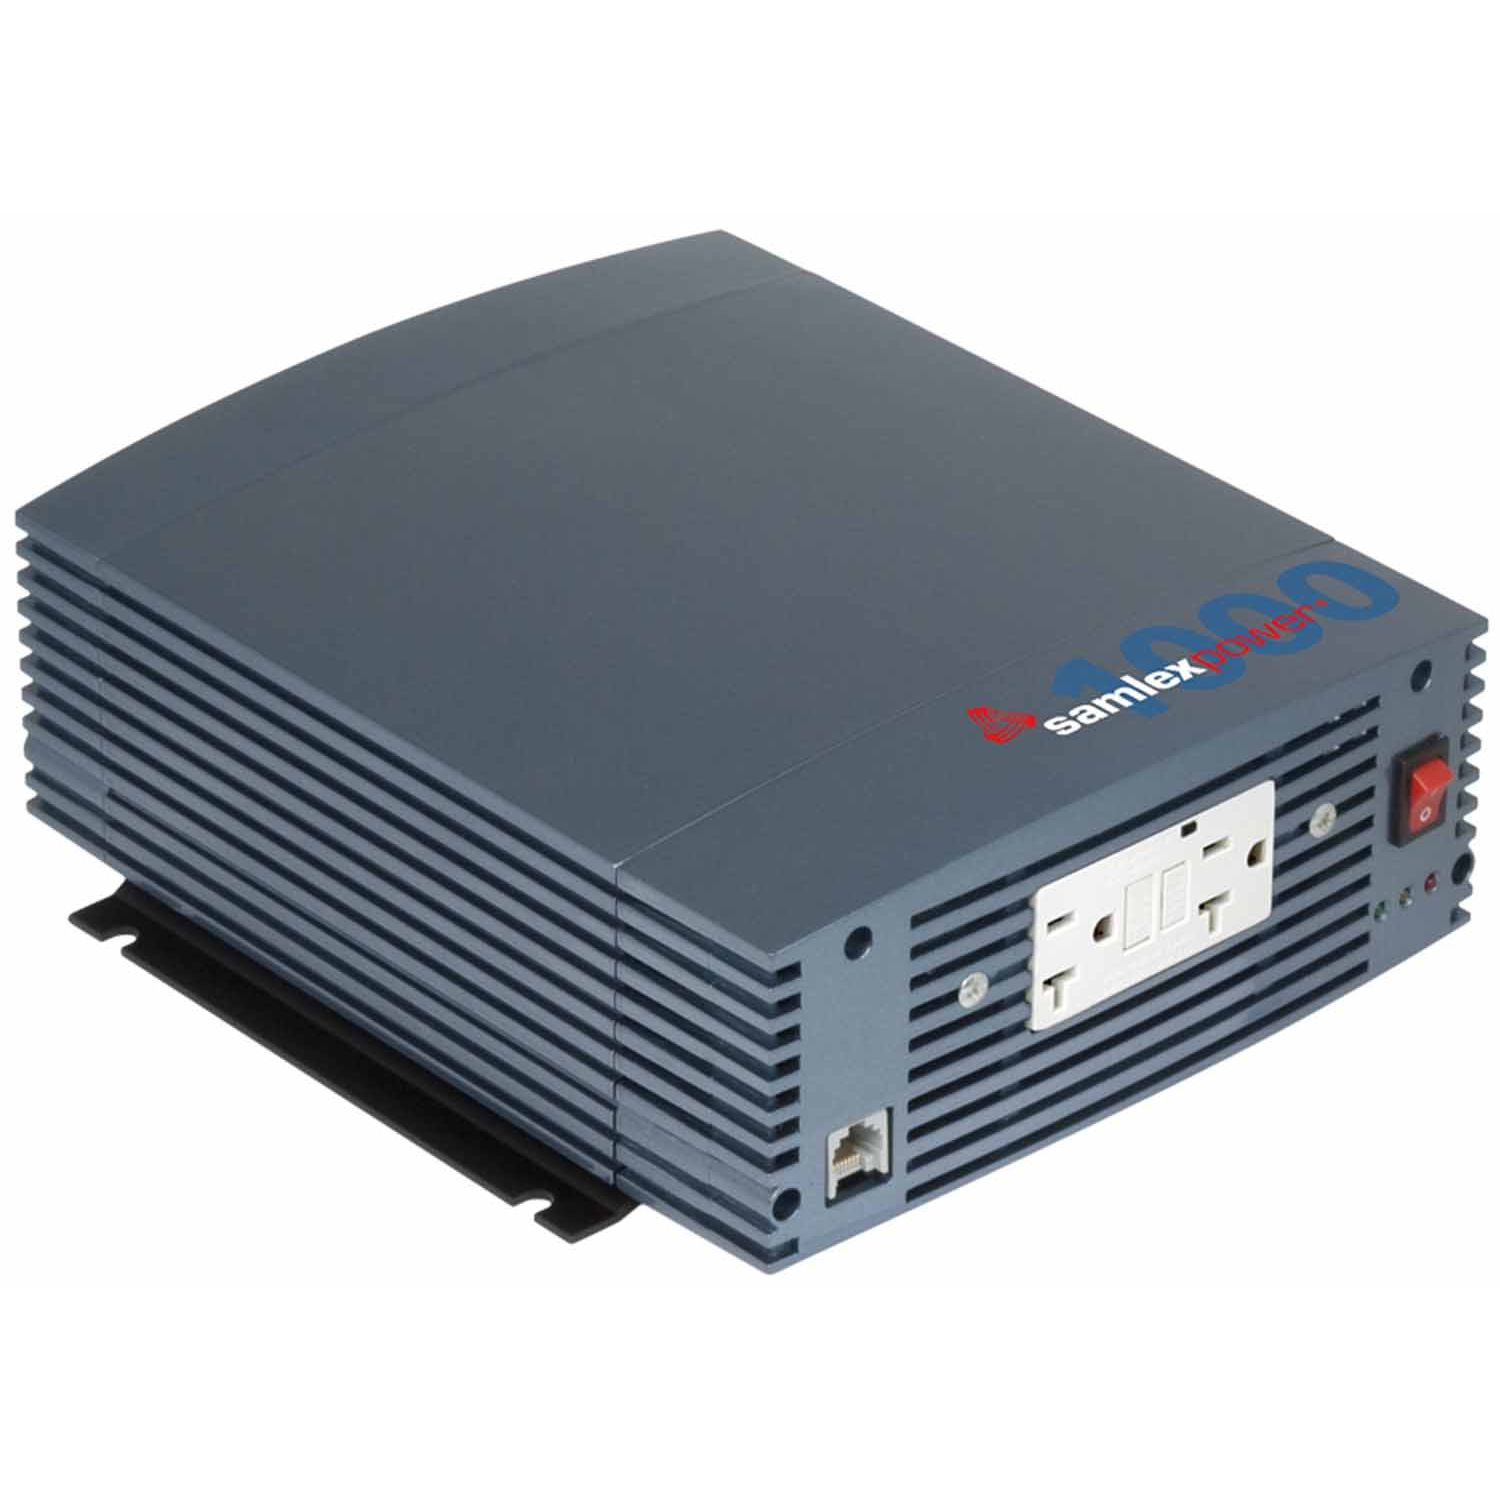 1000 Watt Pure Sine Wave Inverter Power Supplies Inverters Samlex Ssw100012a 1 000 Watt Pure